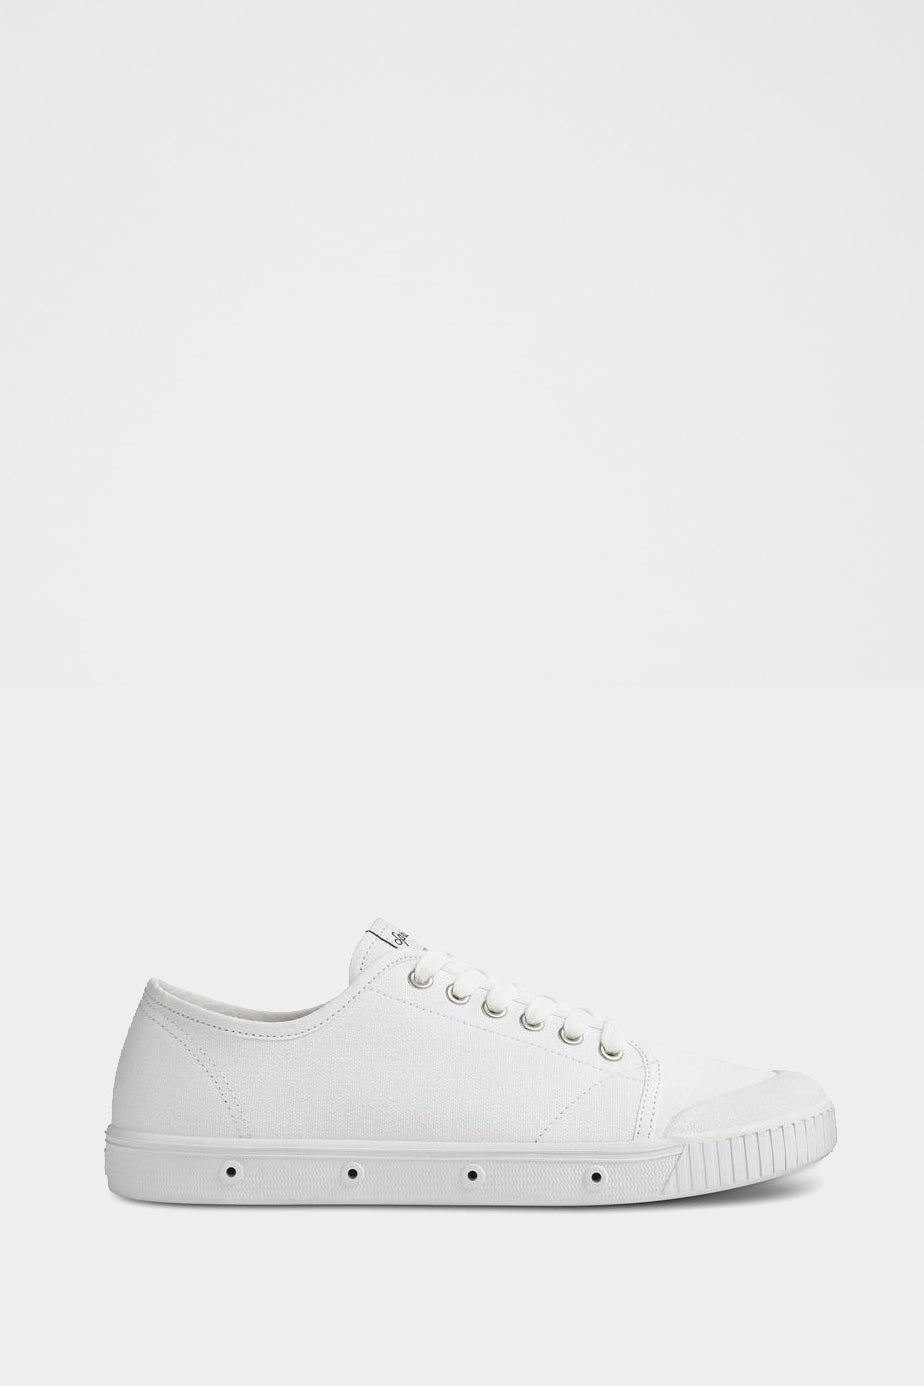 SPRINGCOURT - G2S 1001 Classic Canvas Sneakers online at PAYA boutique